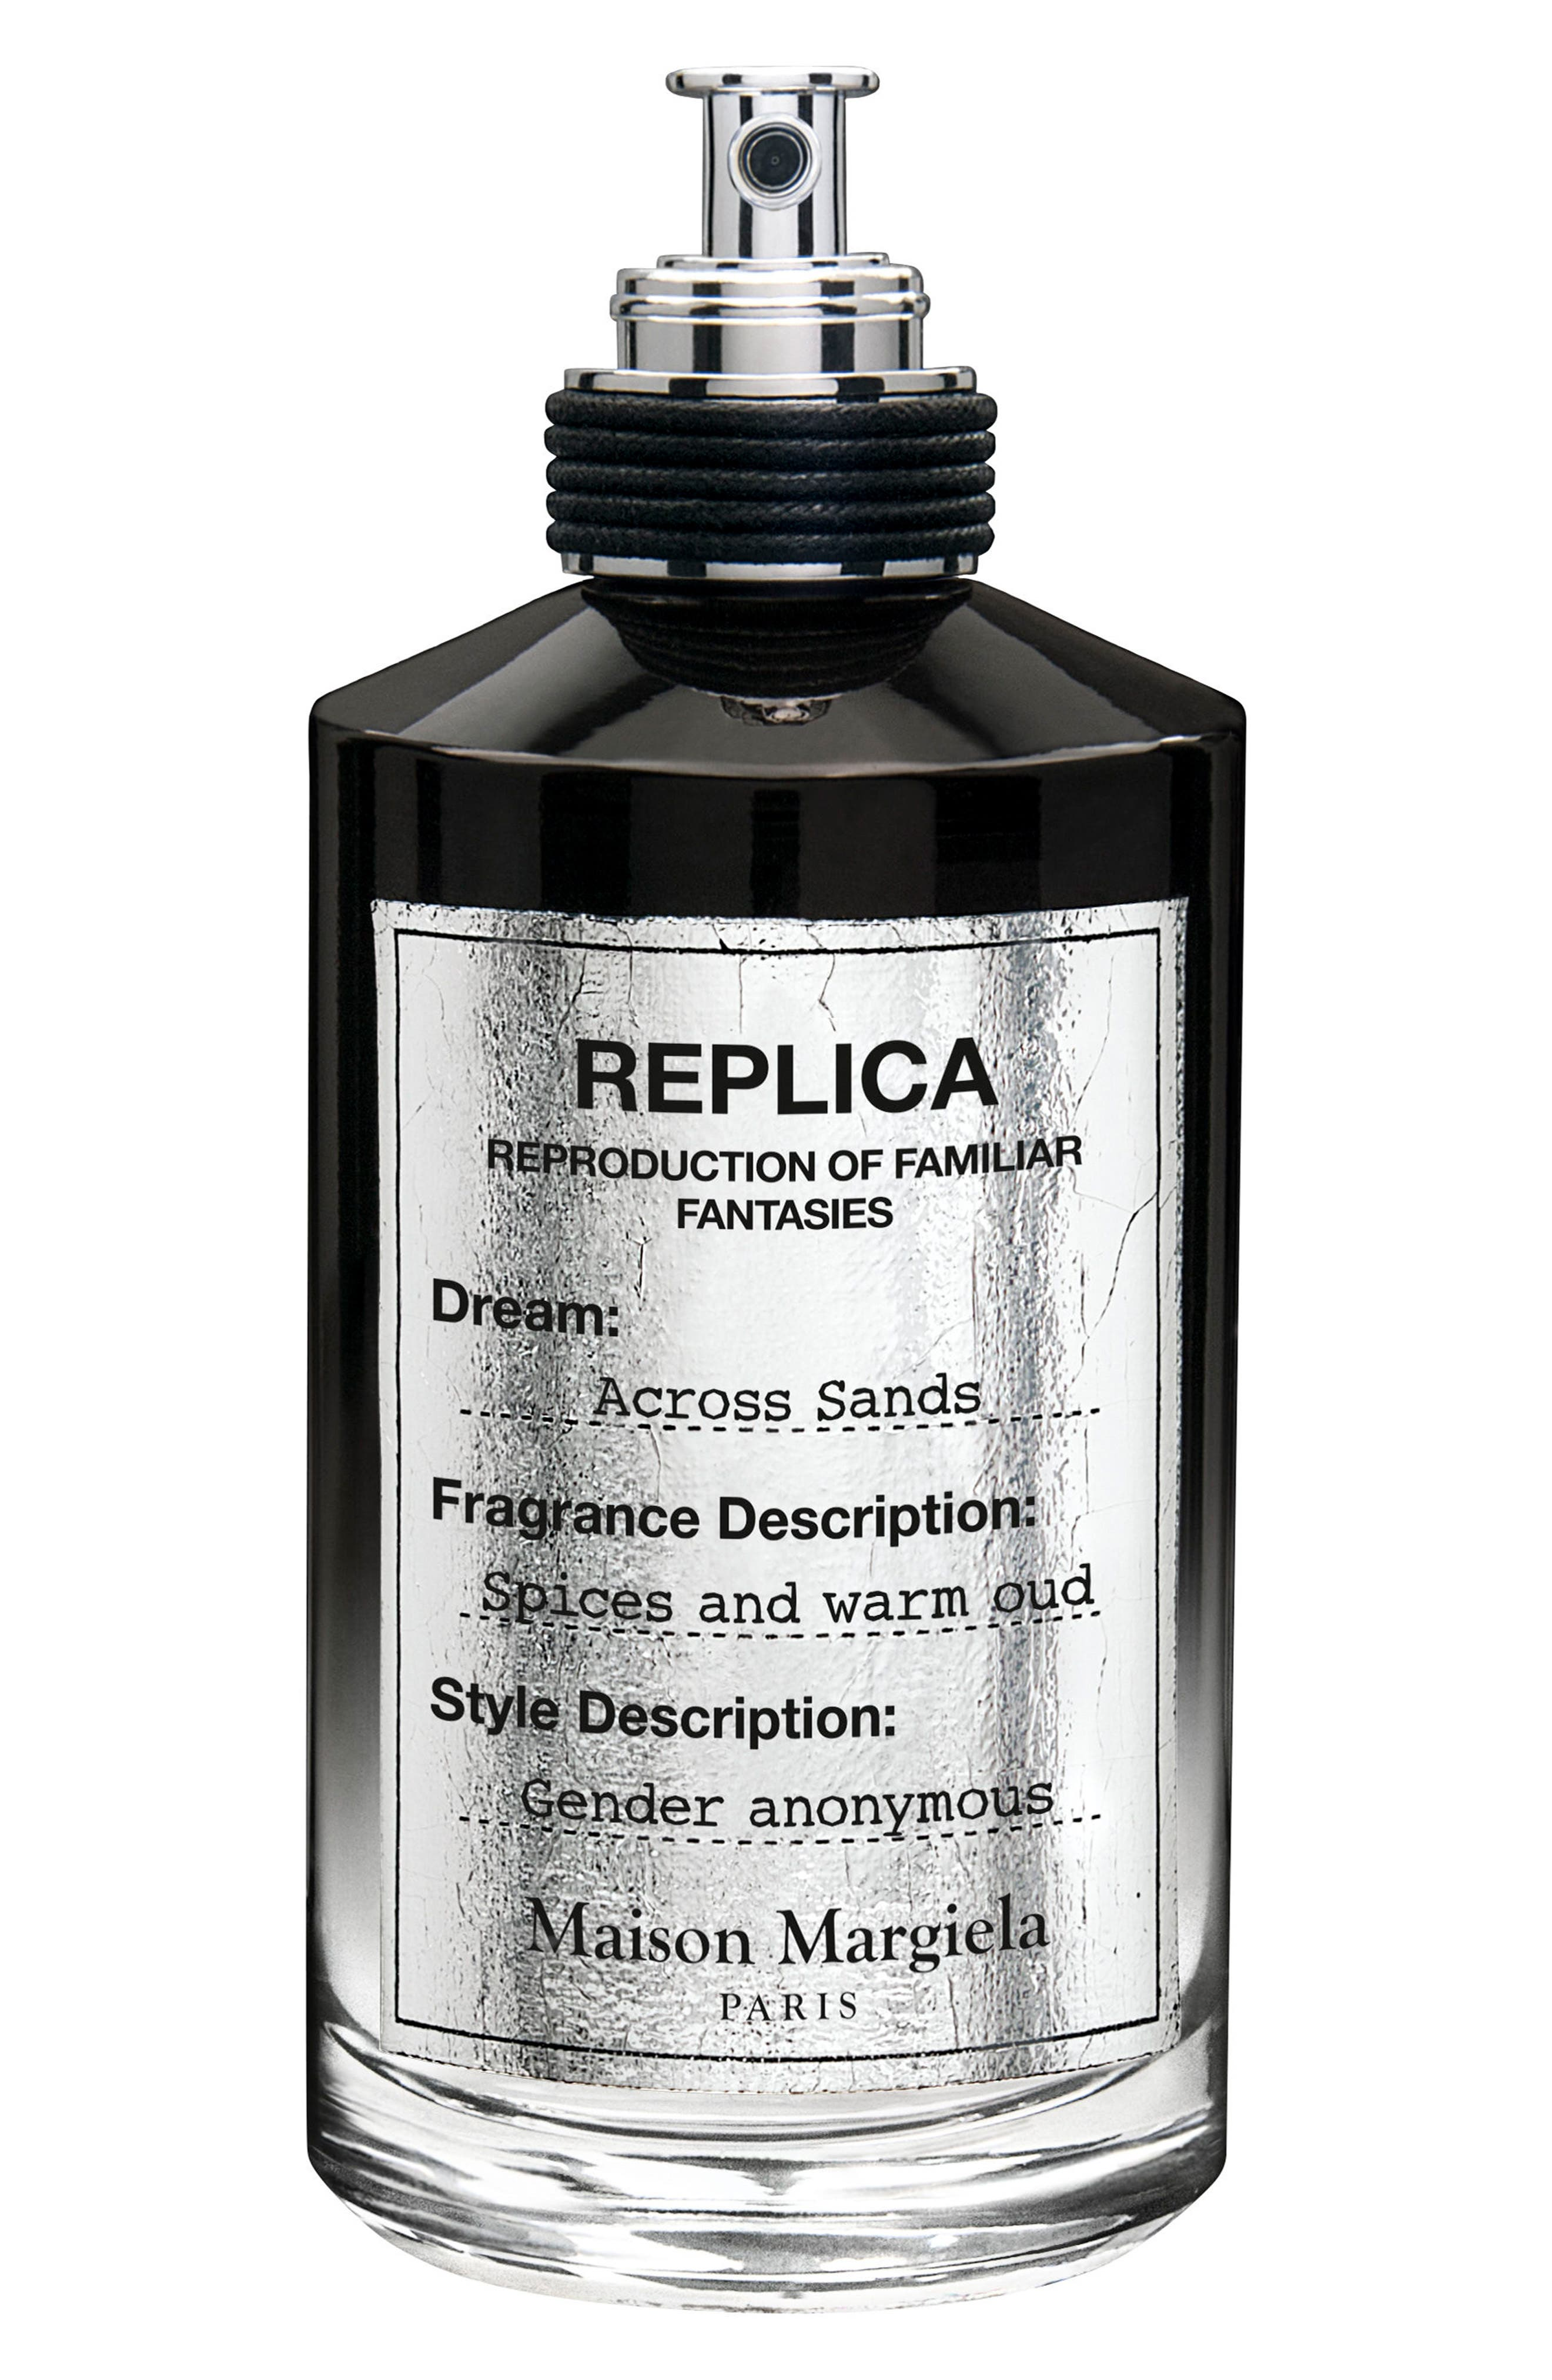 Alternate Image 1 Selected - Maison Margiela Replica Across Sands Eau de Parfum